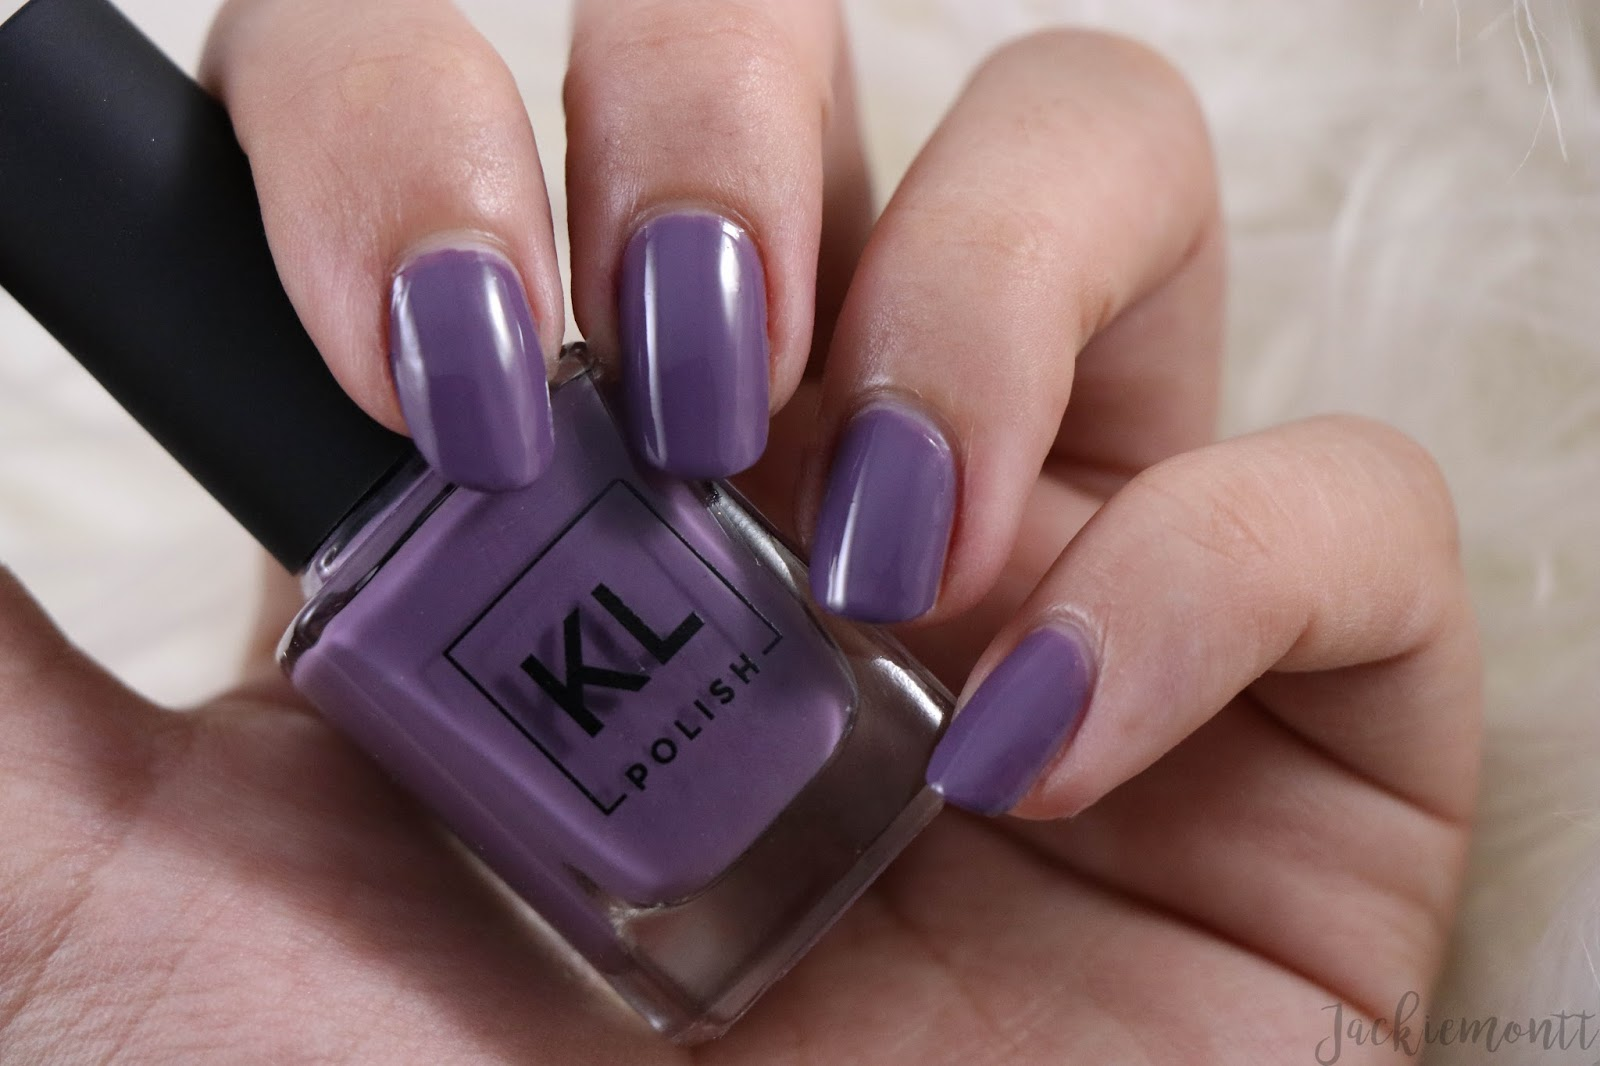 Pantone Color of the Year: Ultra Violet Nails - JACKIEMONTT